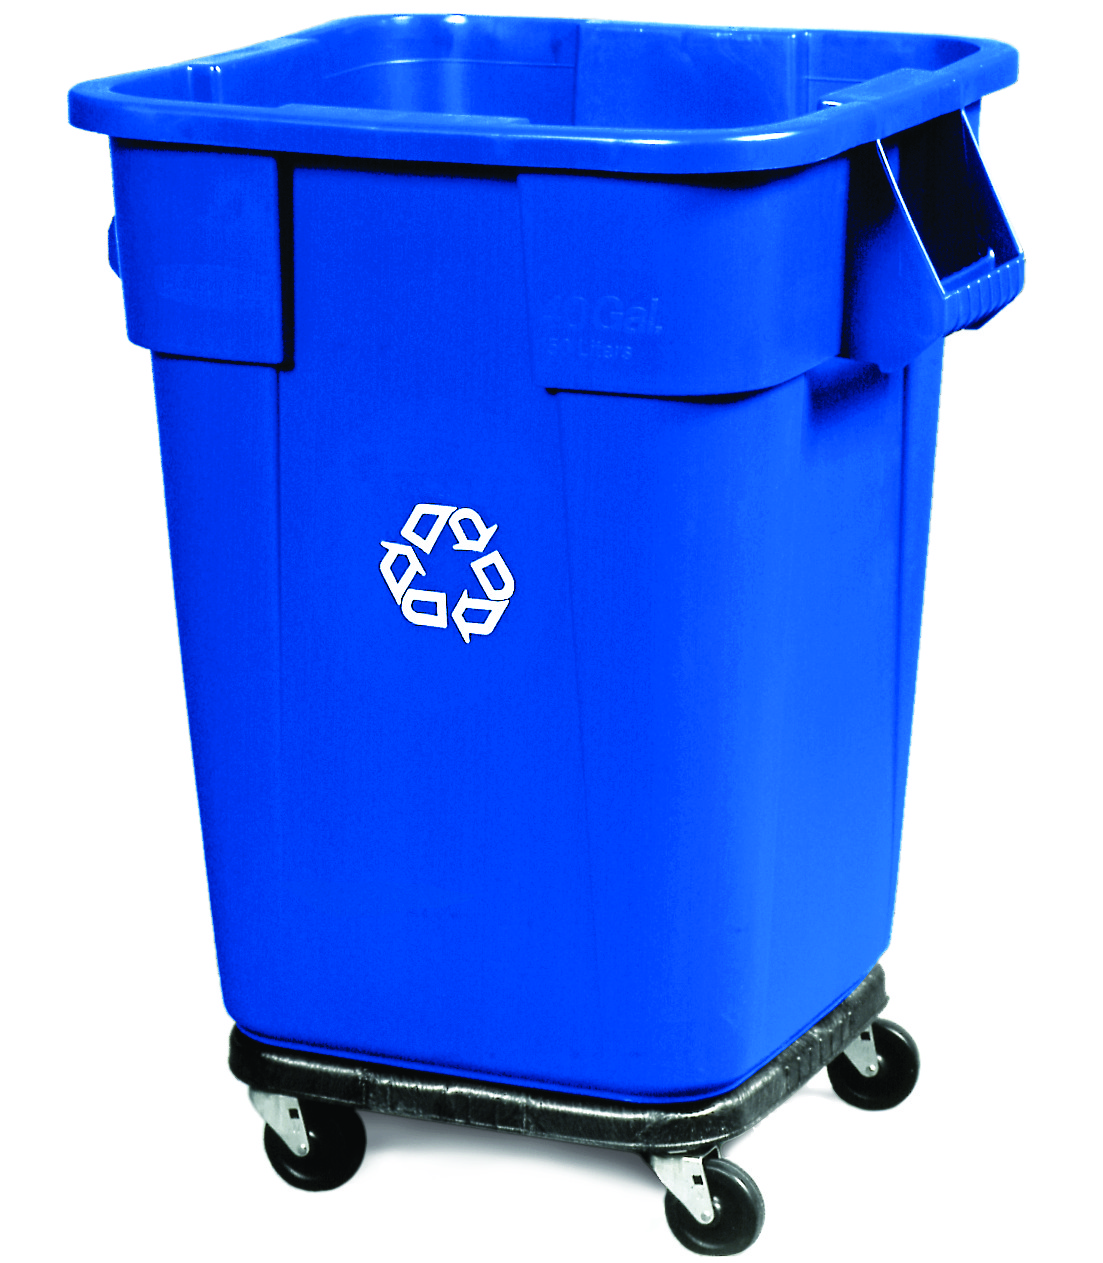 Rubbermaid Brute Dolly For Square Containers Recycle Away